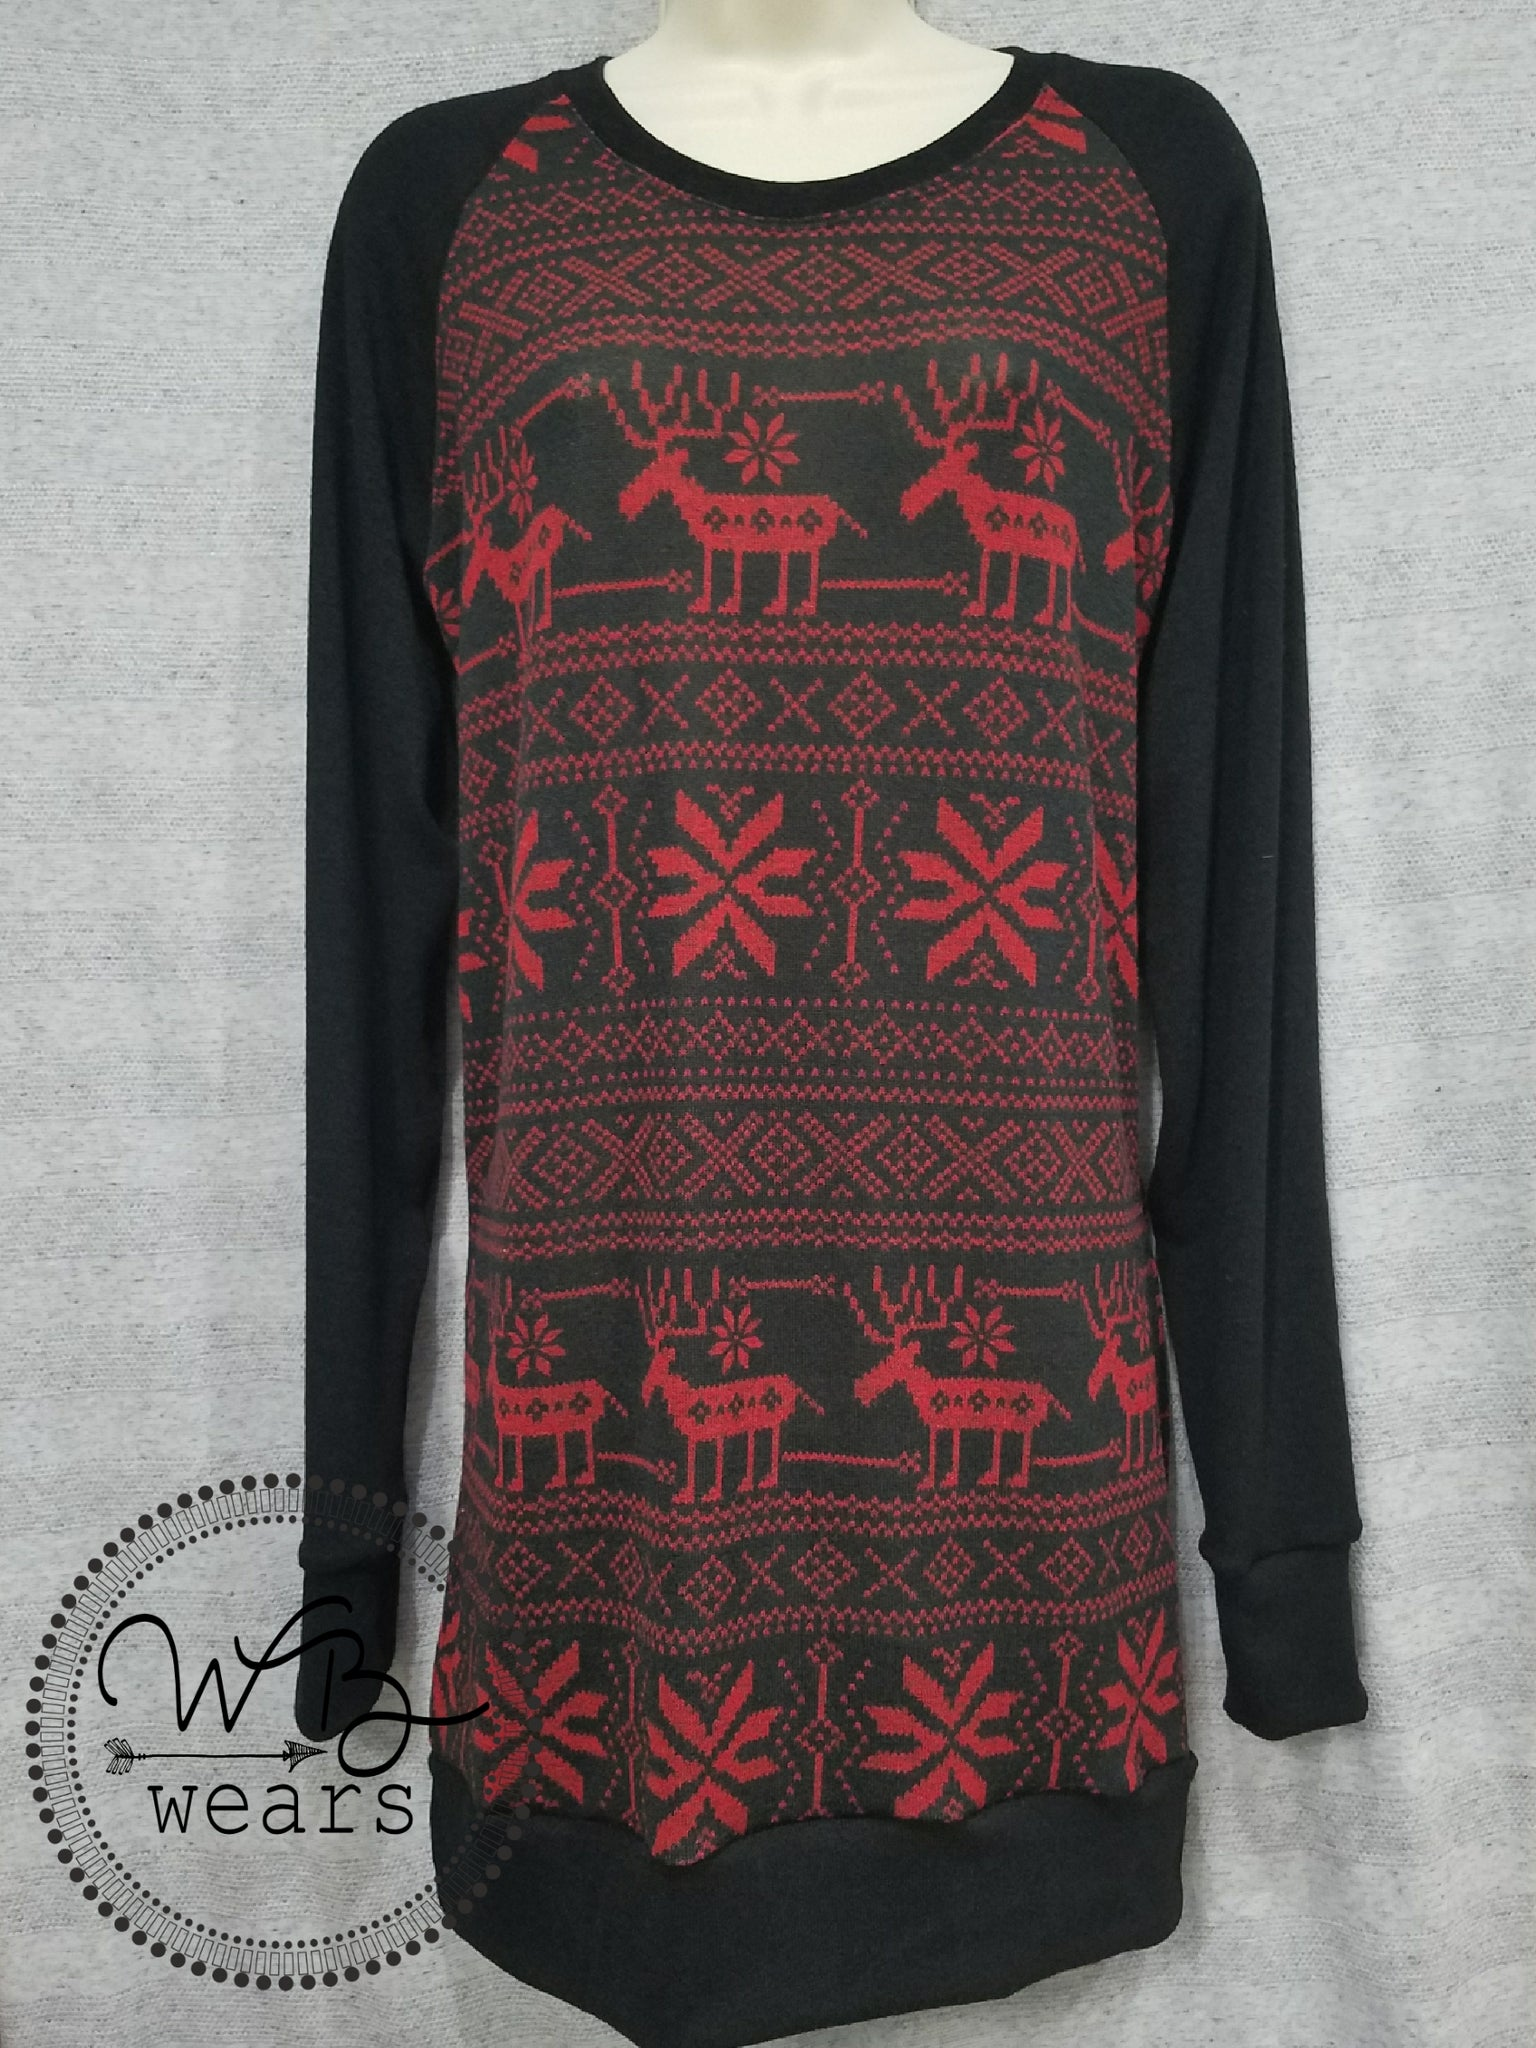 OOAK Raglan Christmas Sweater - WB Wears